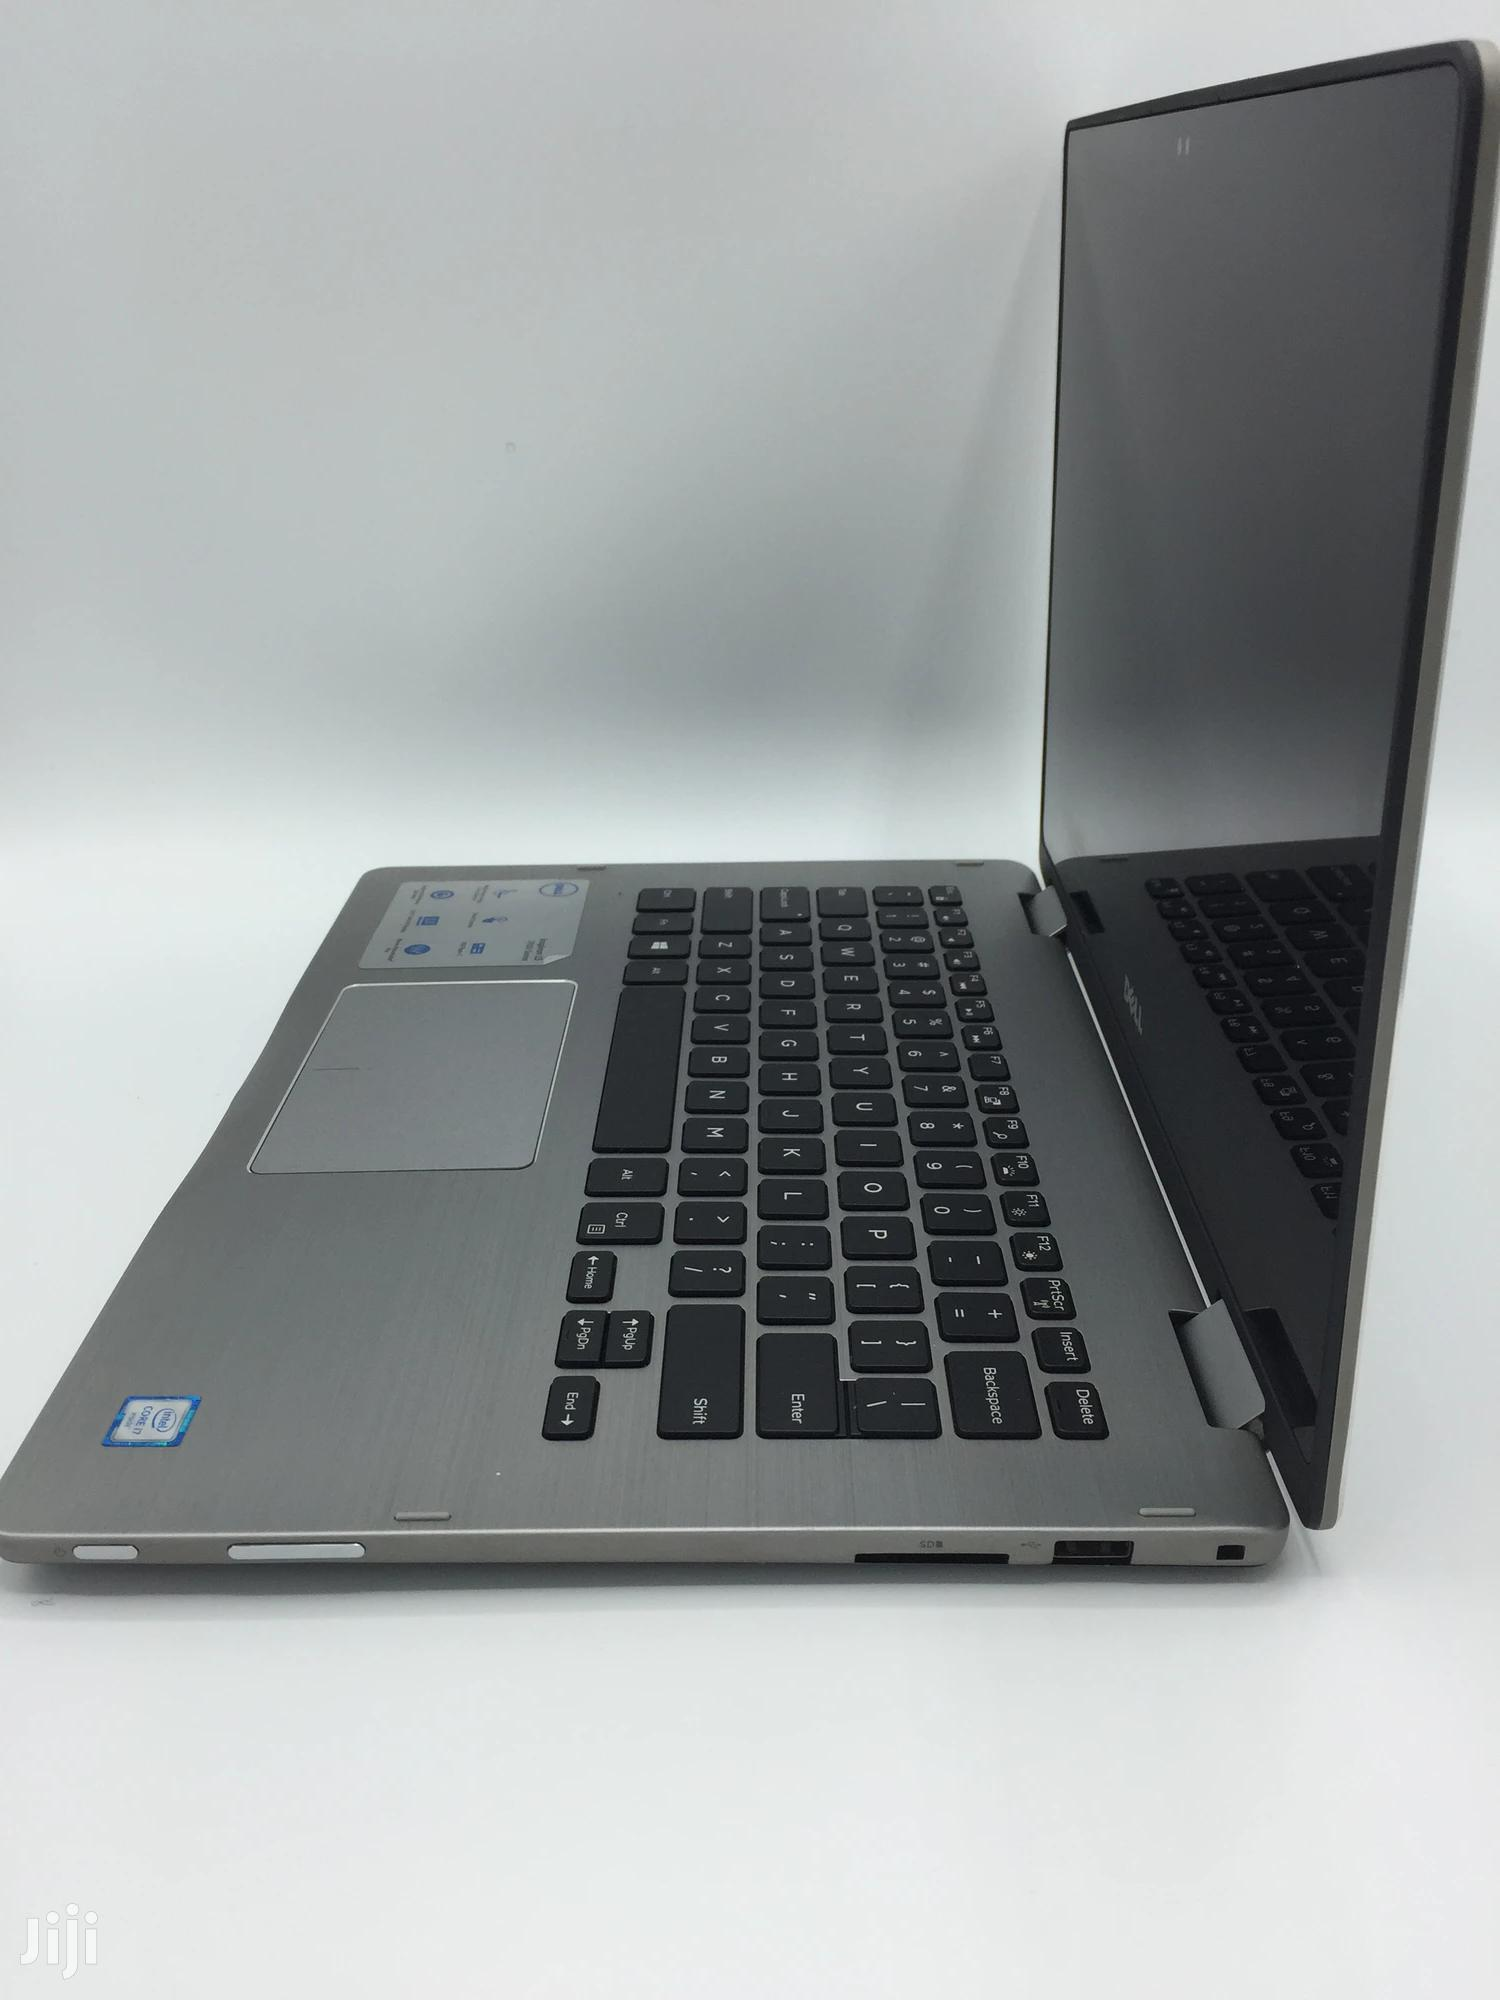 Laptop Dell Inspiron 13 7000 8GB Intel Core I7 HDD 500GB | Laptops & Computers for sale in Kampala, Central Region, Uganda